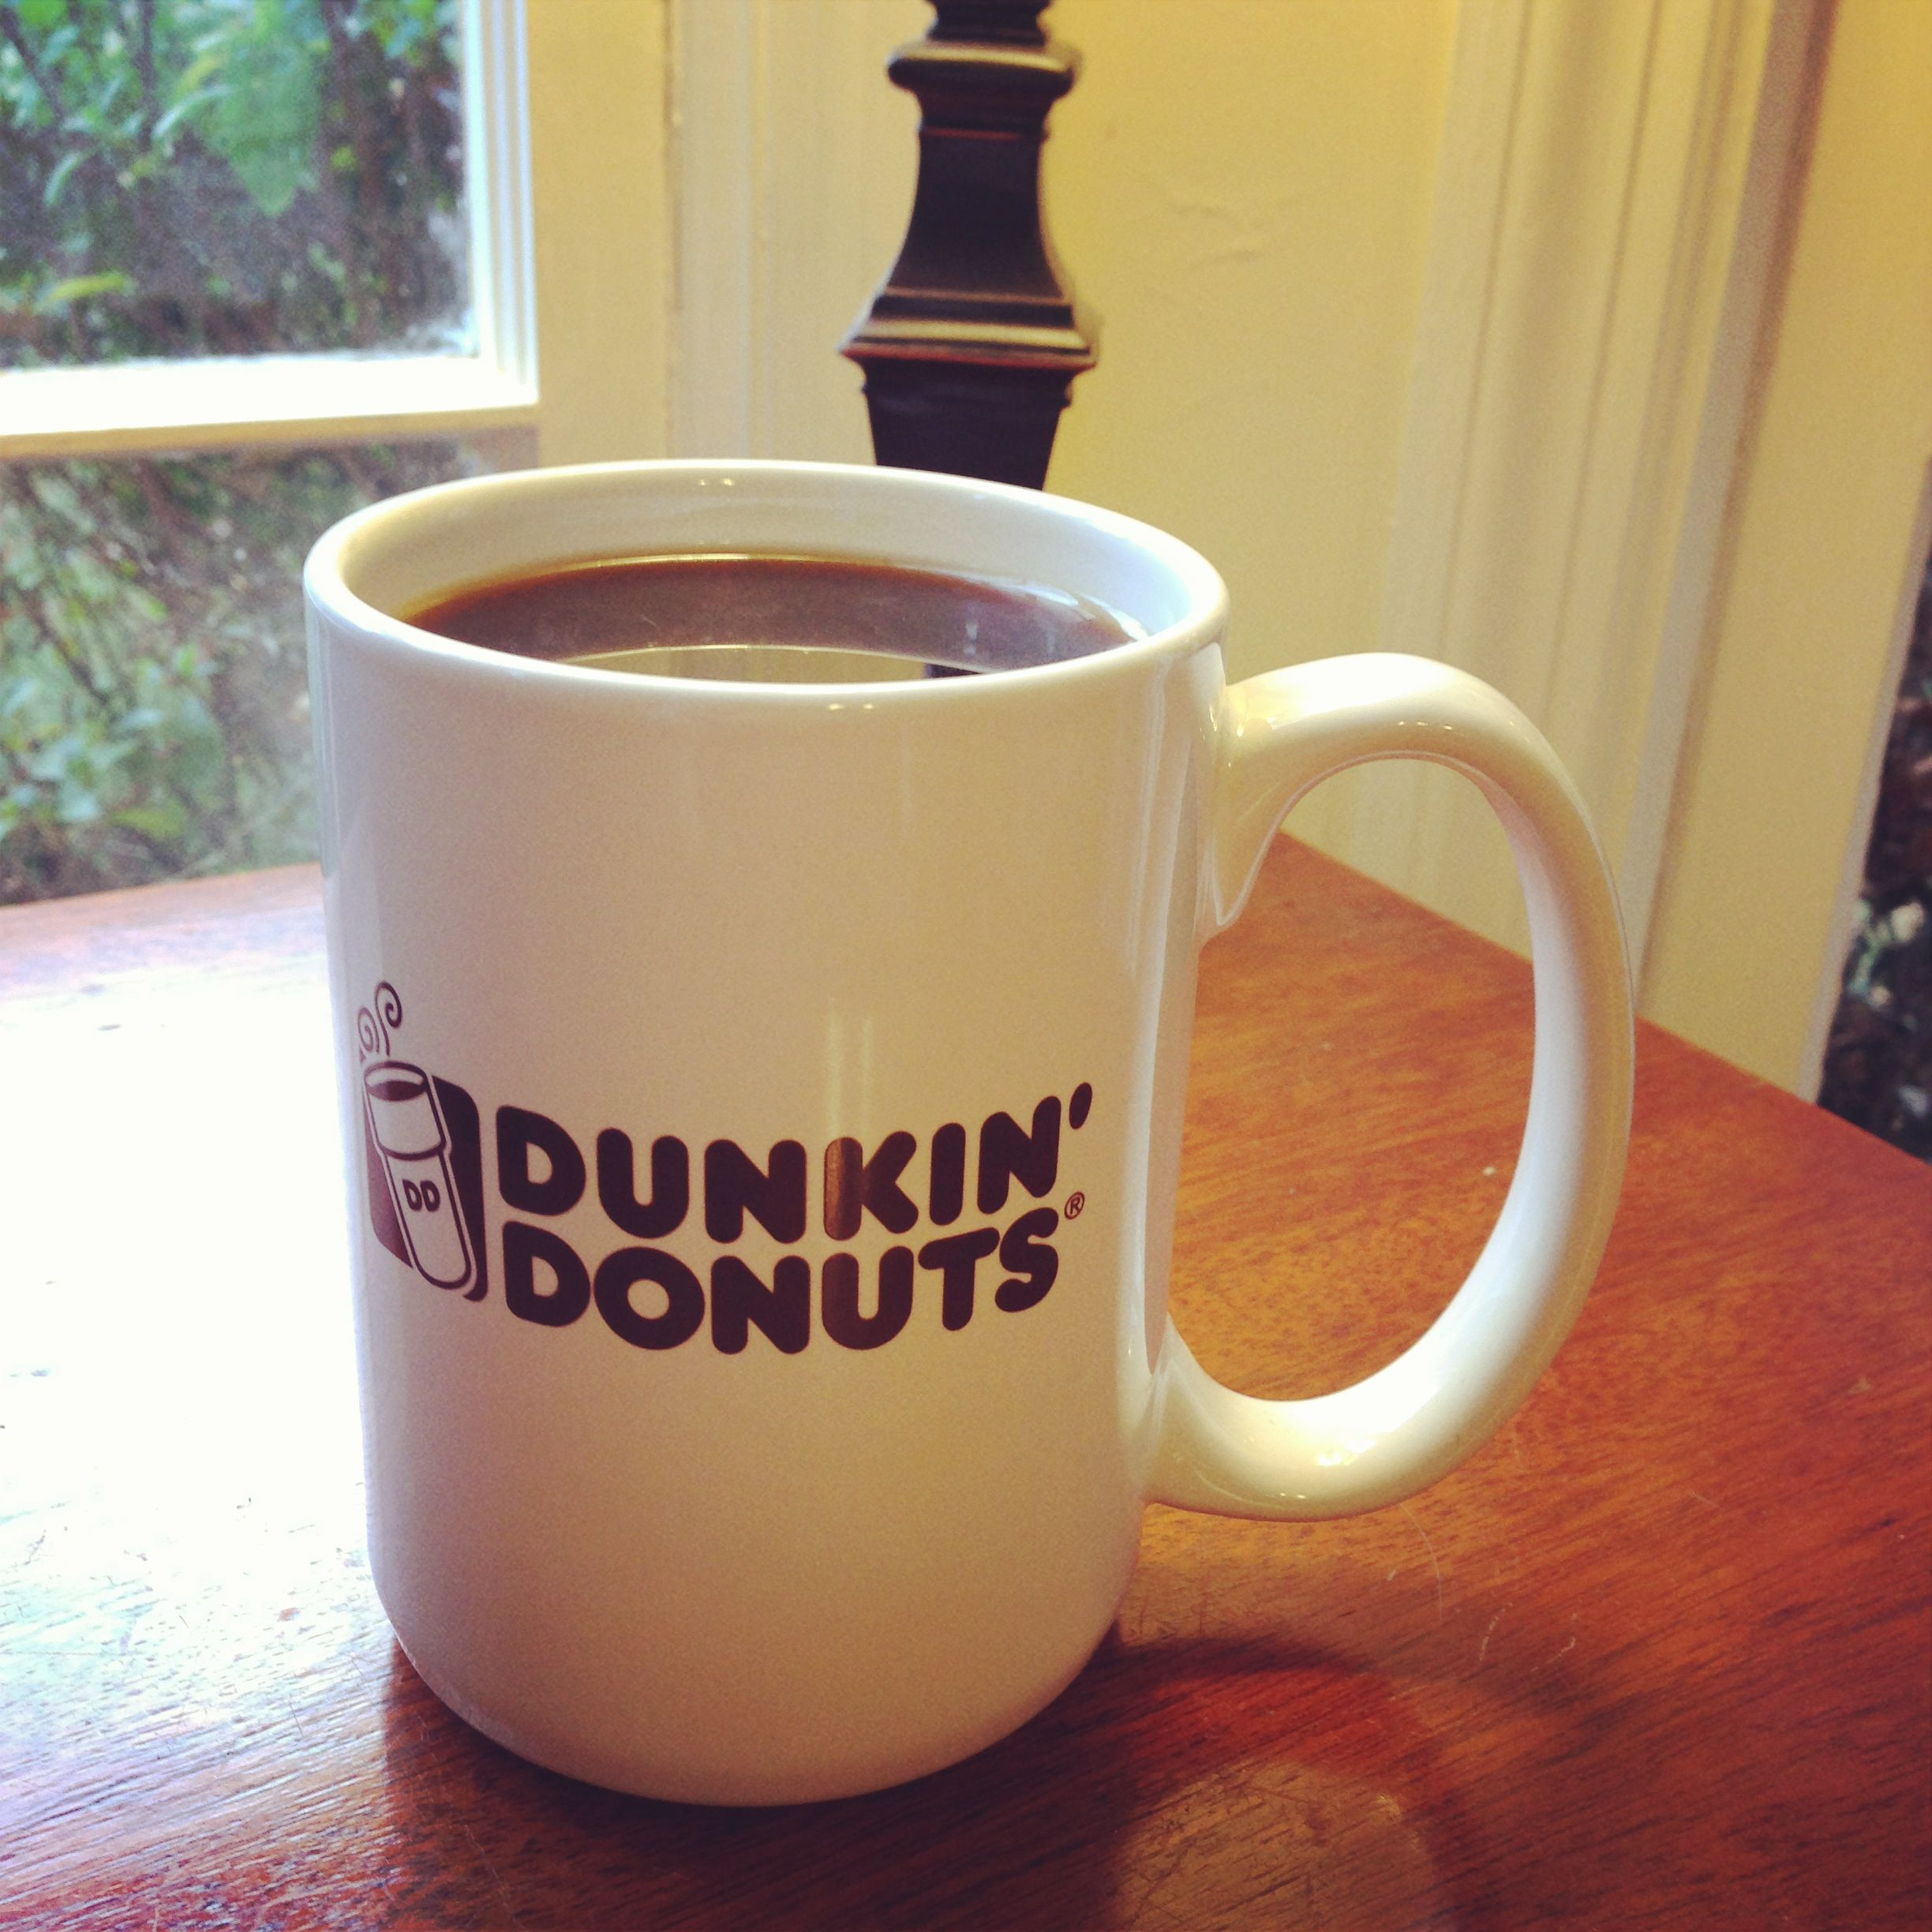 Enjoying a delicious cup of Dunkin' Donuts Coffee to keep